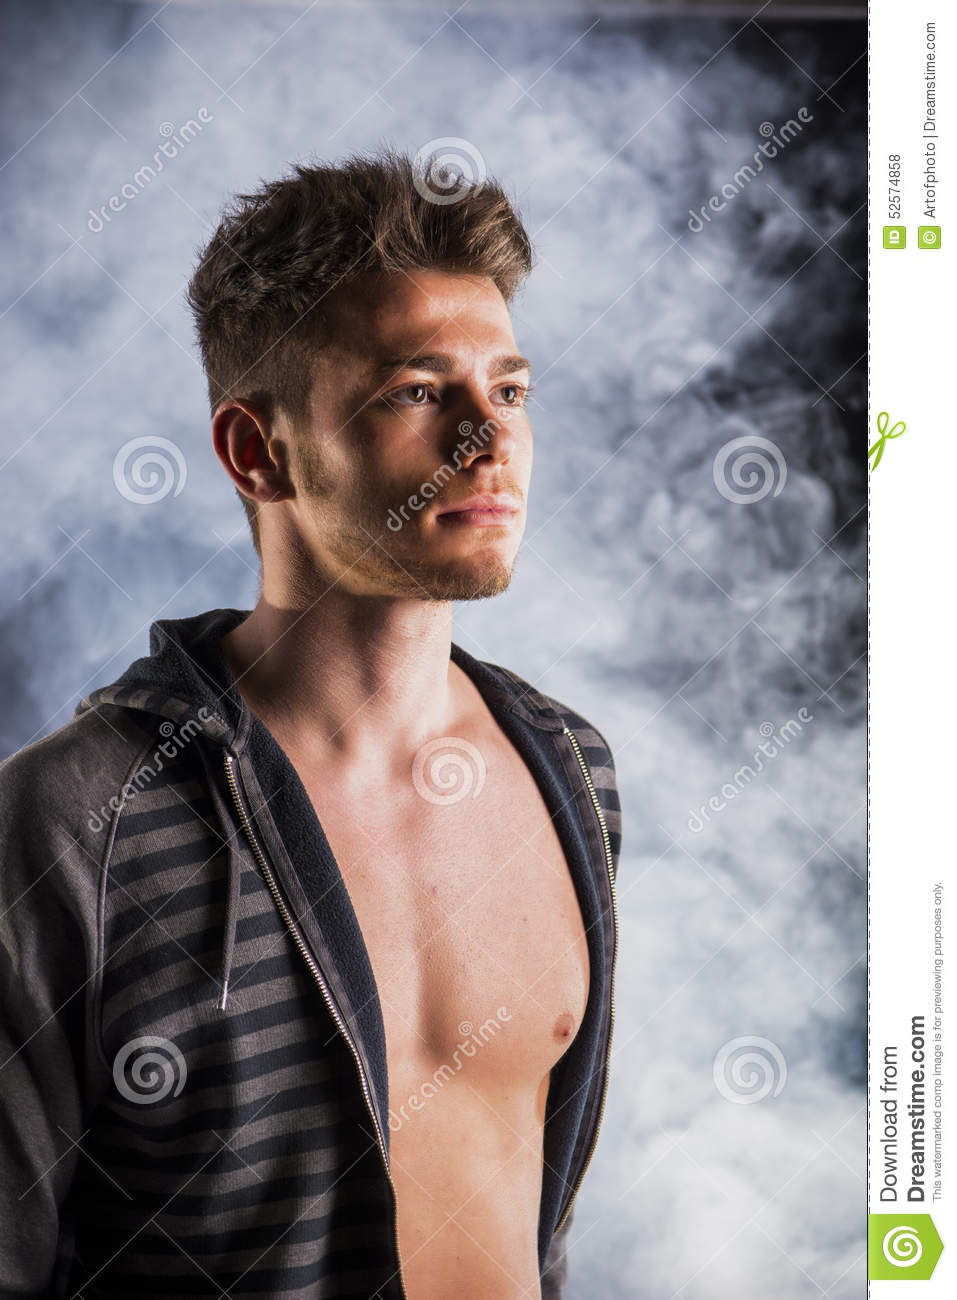 15 Year Boys Bedroom: Handsome Tough Young Man In Dark Hoodie On Smoky Stock